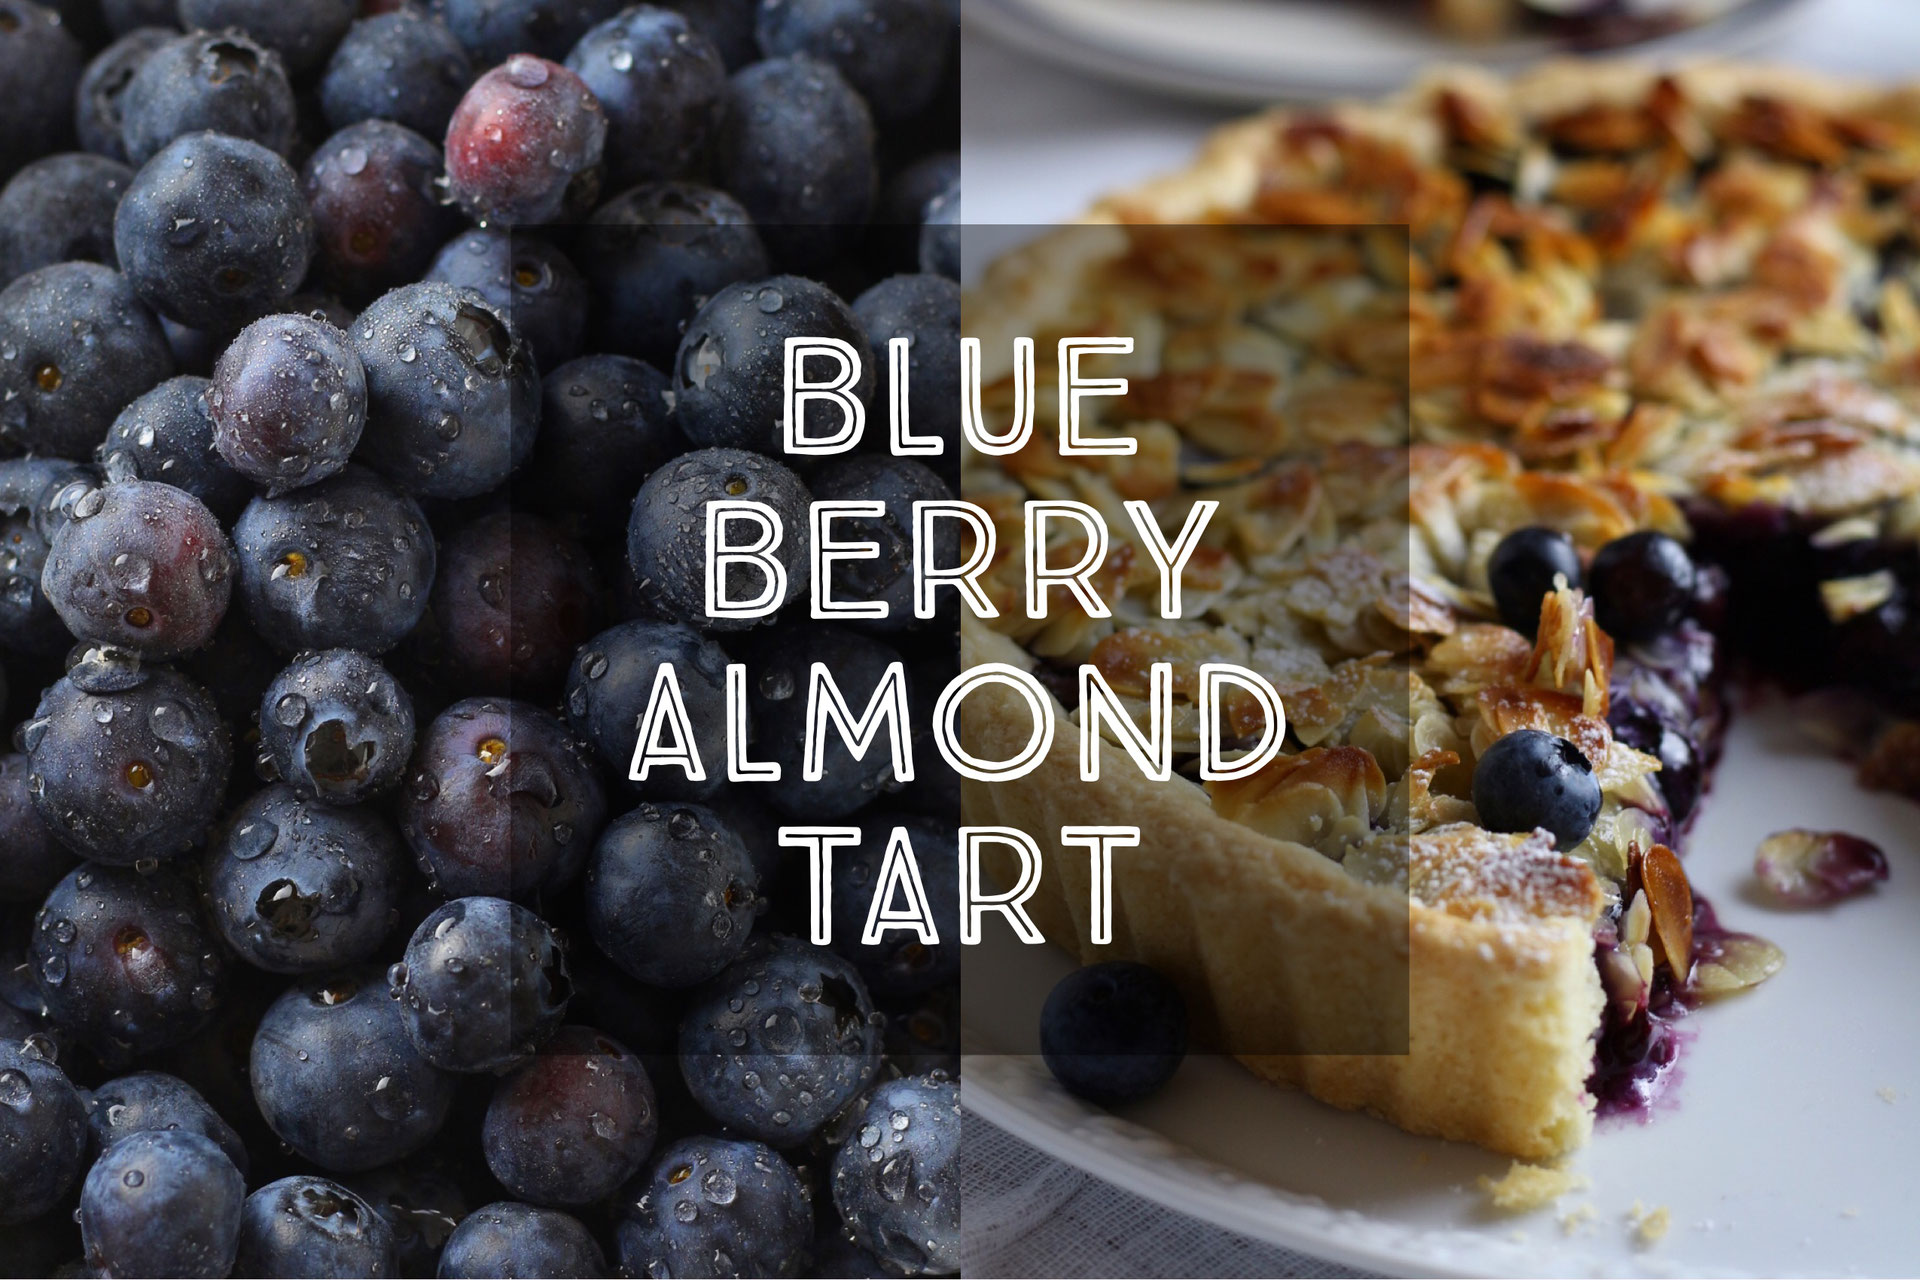 blueberry-and-almond-shortbread-tart-almond-tart-